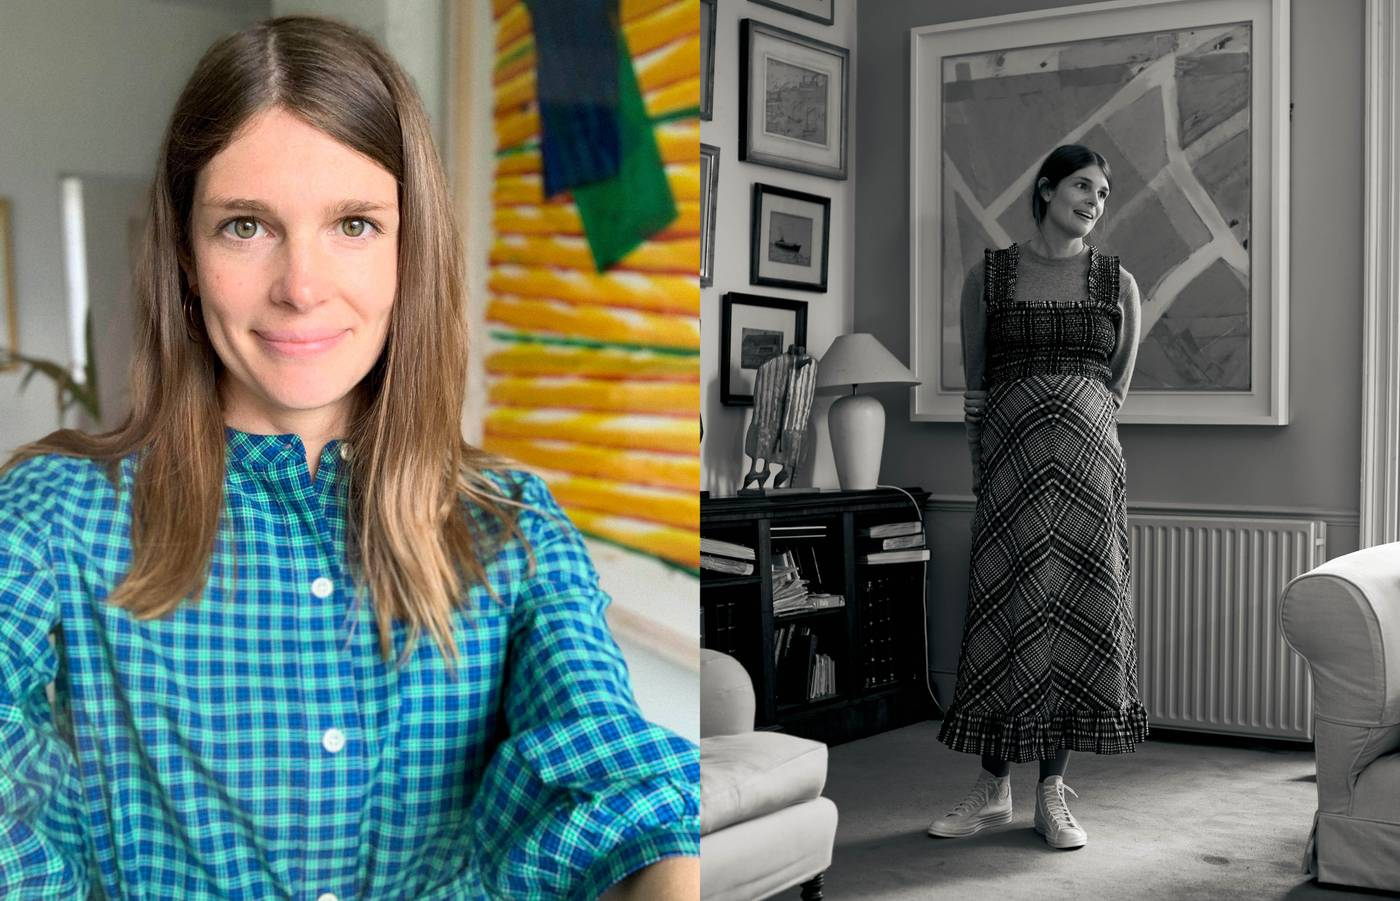 Our Head of Brand shares her top four maternity style lessons